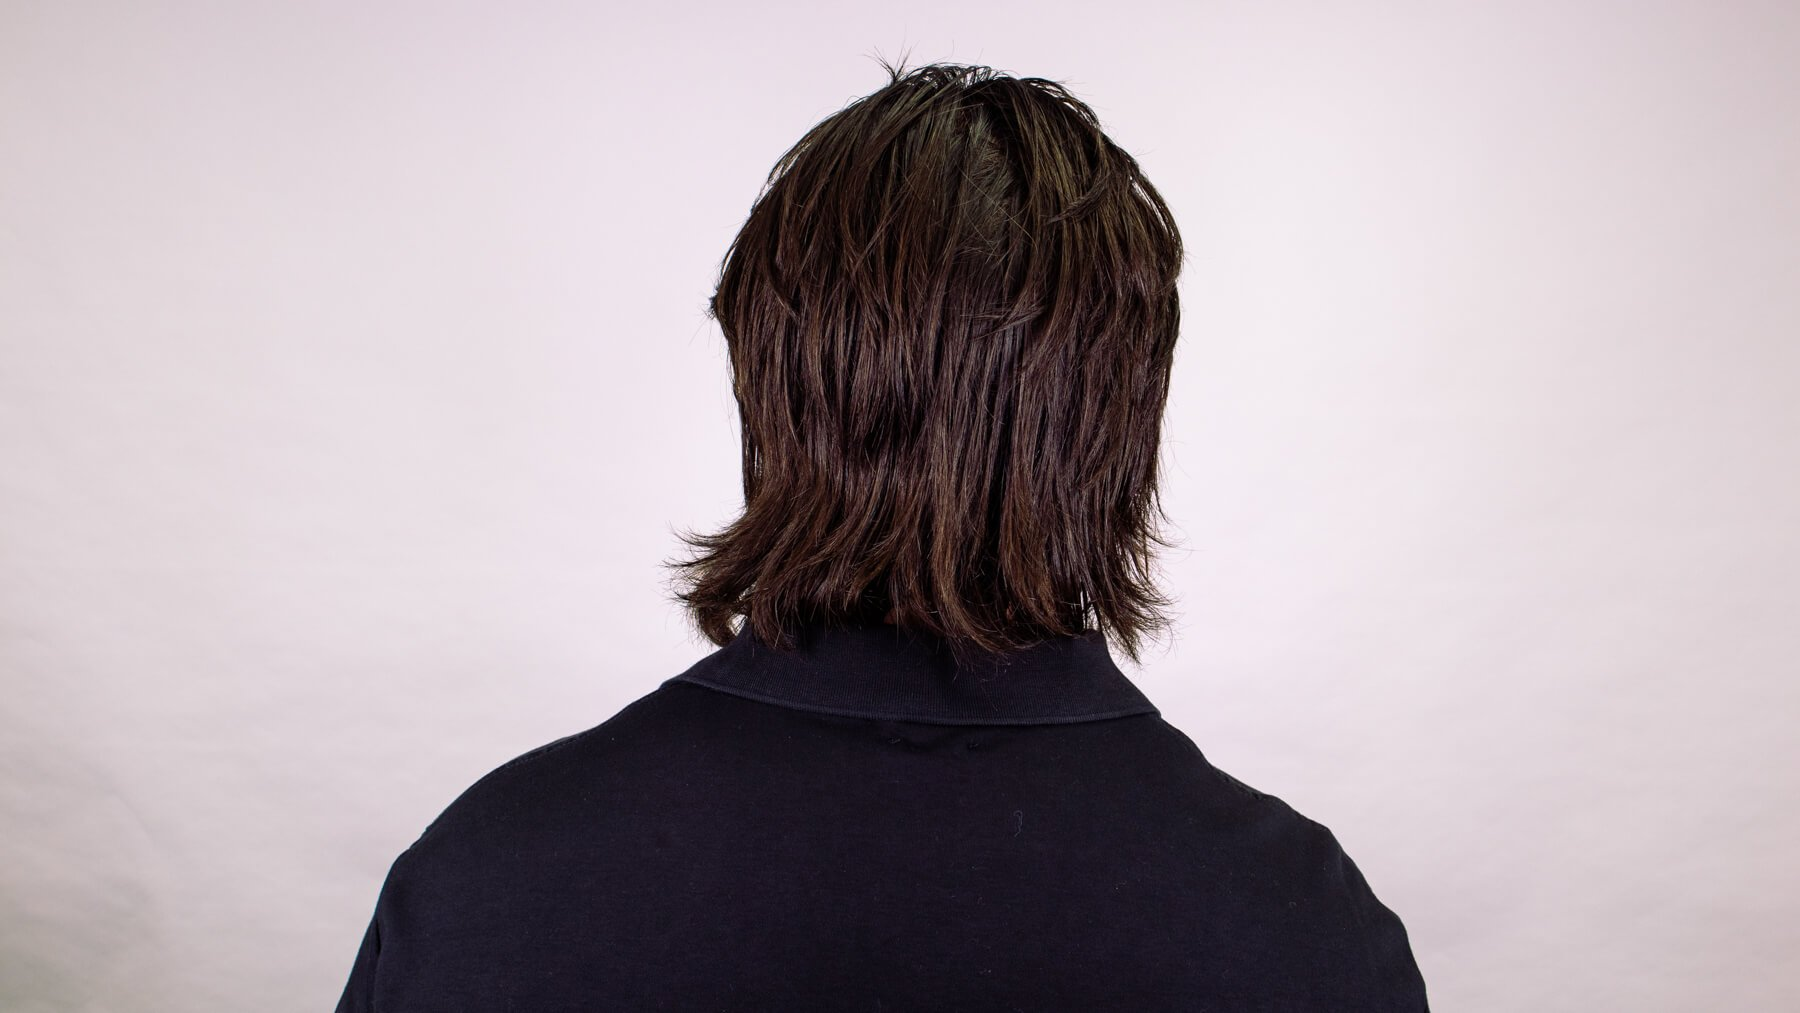 Tousled awkward stage hairstyle back view